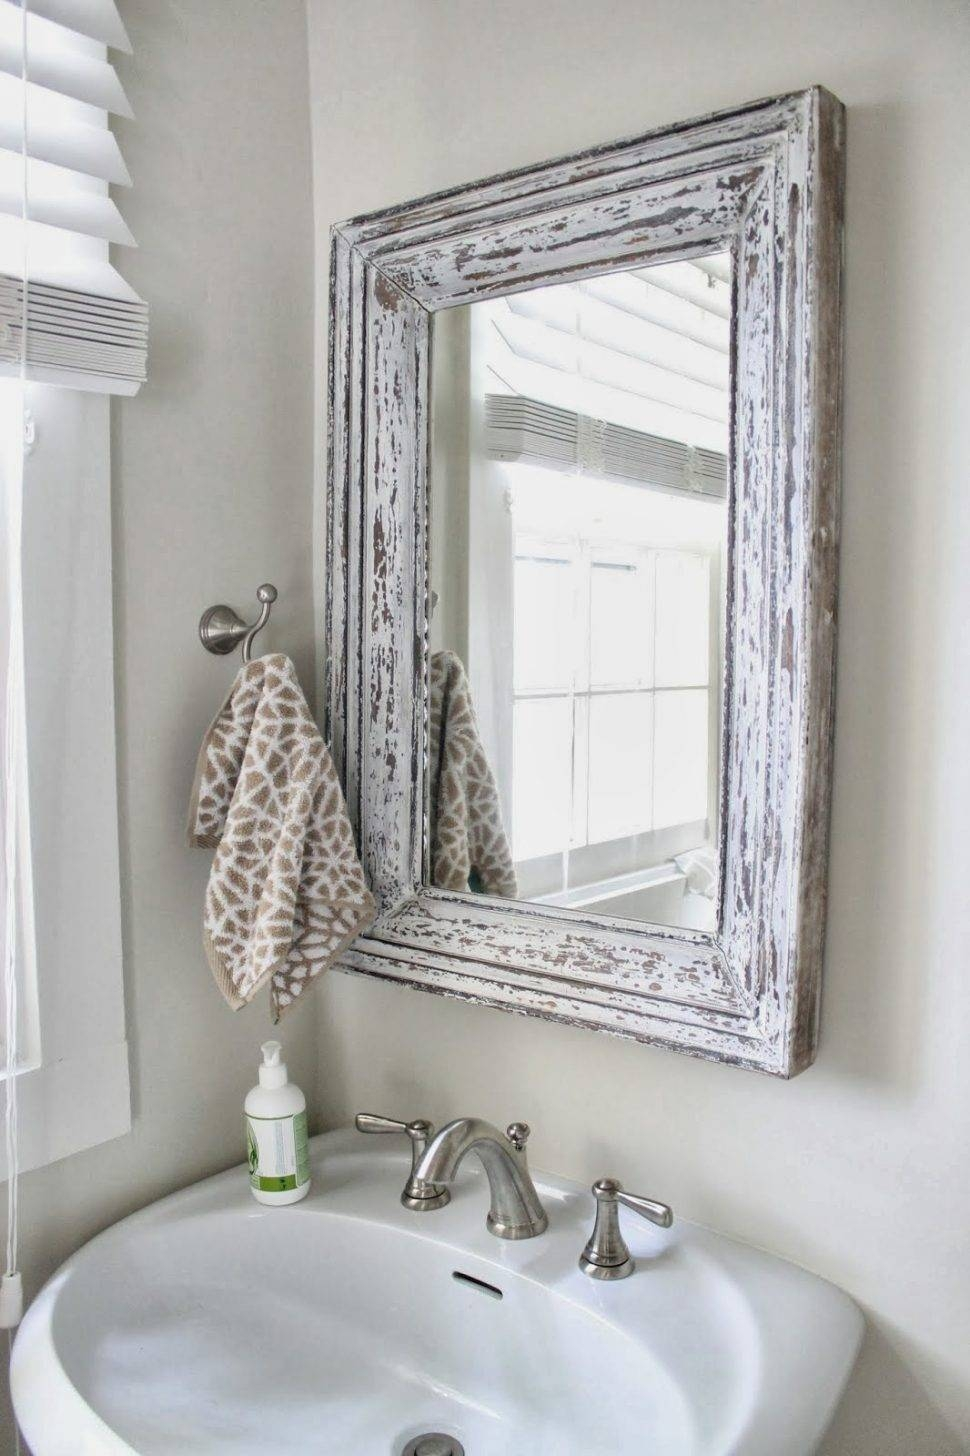 Fantastic Shabby Chic Bathroom Mirror Cabinets White For – Home For Shabby Chic Bathroom Mirrors (View 2 of 15)